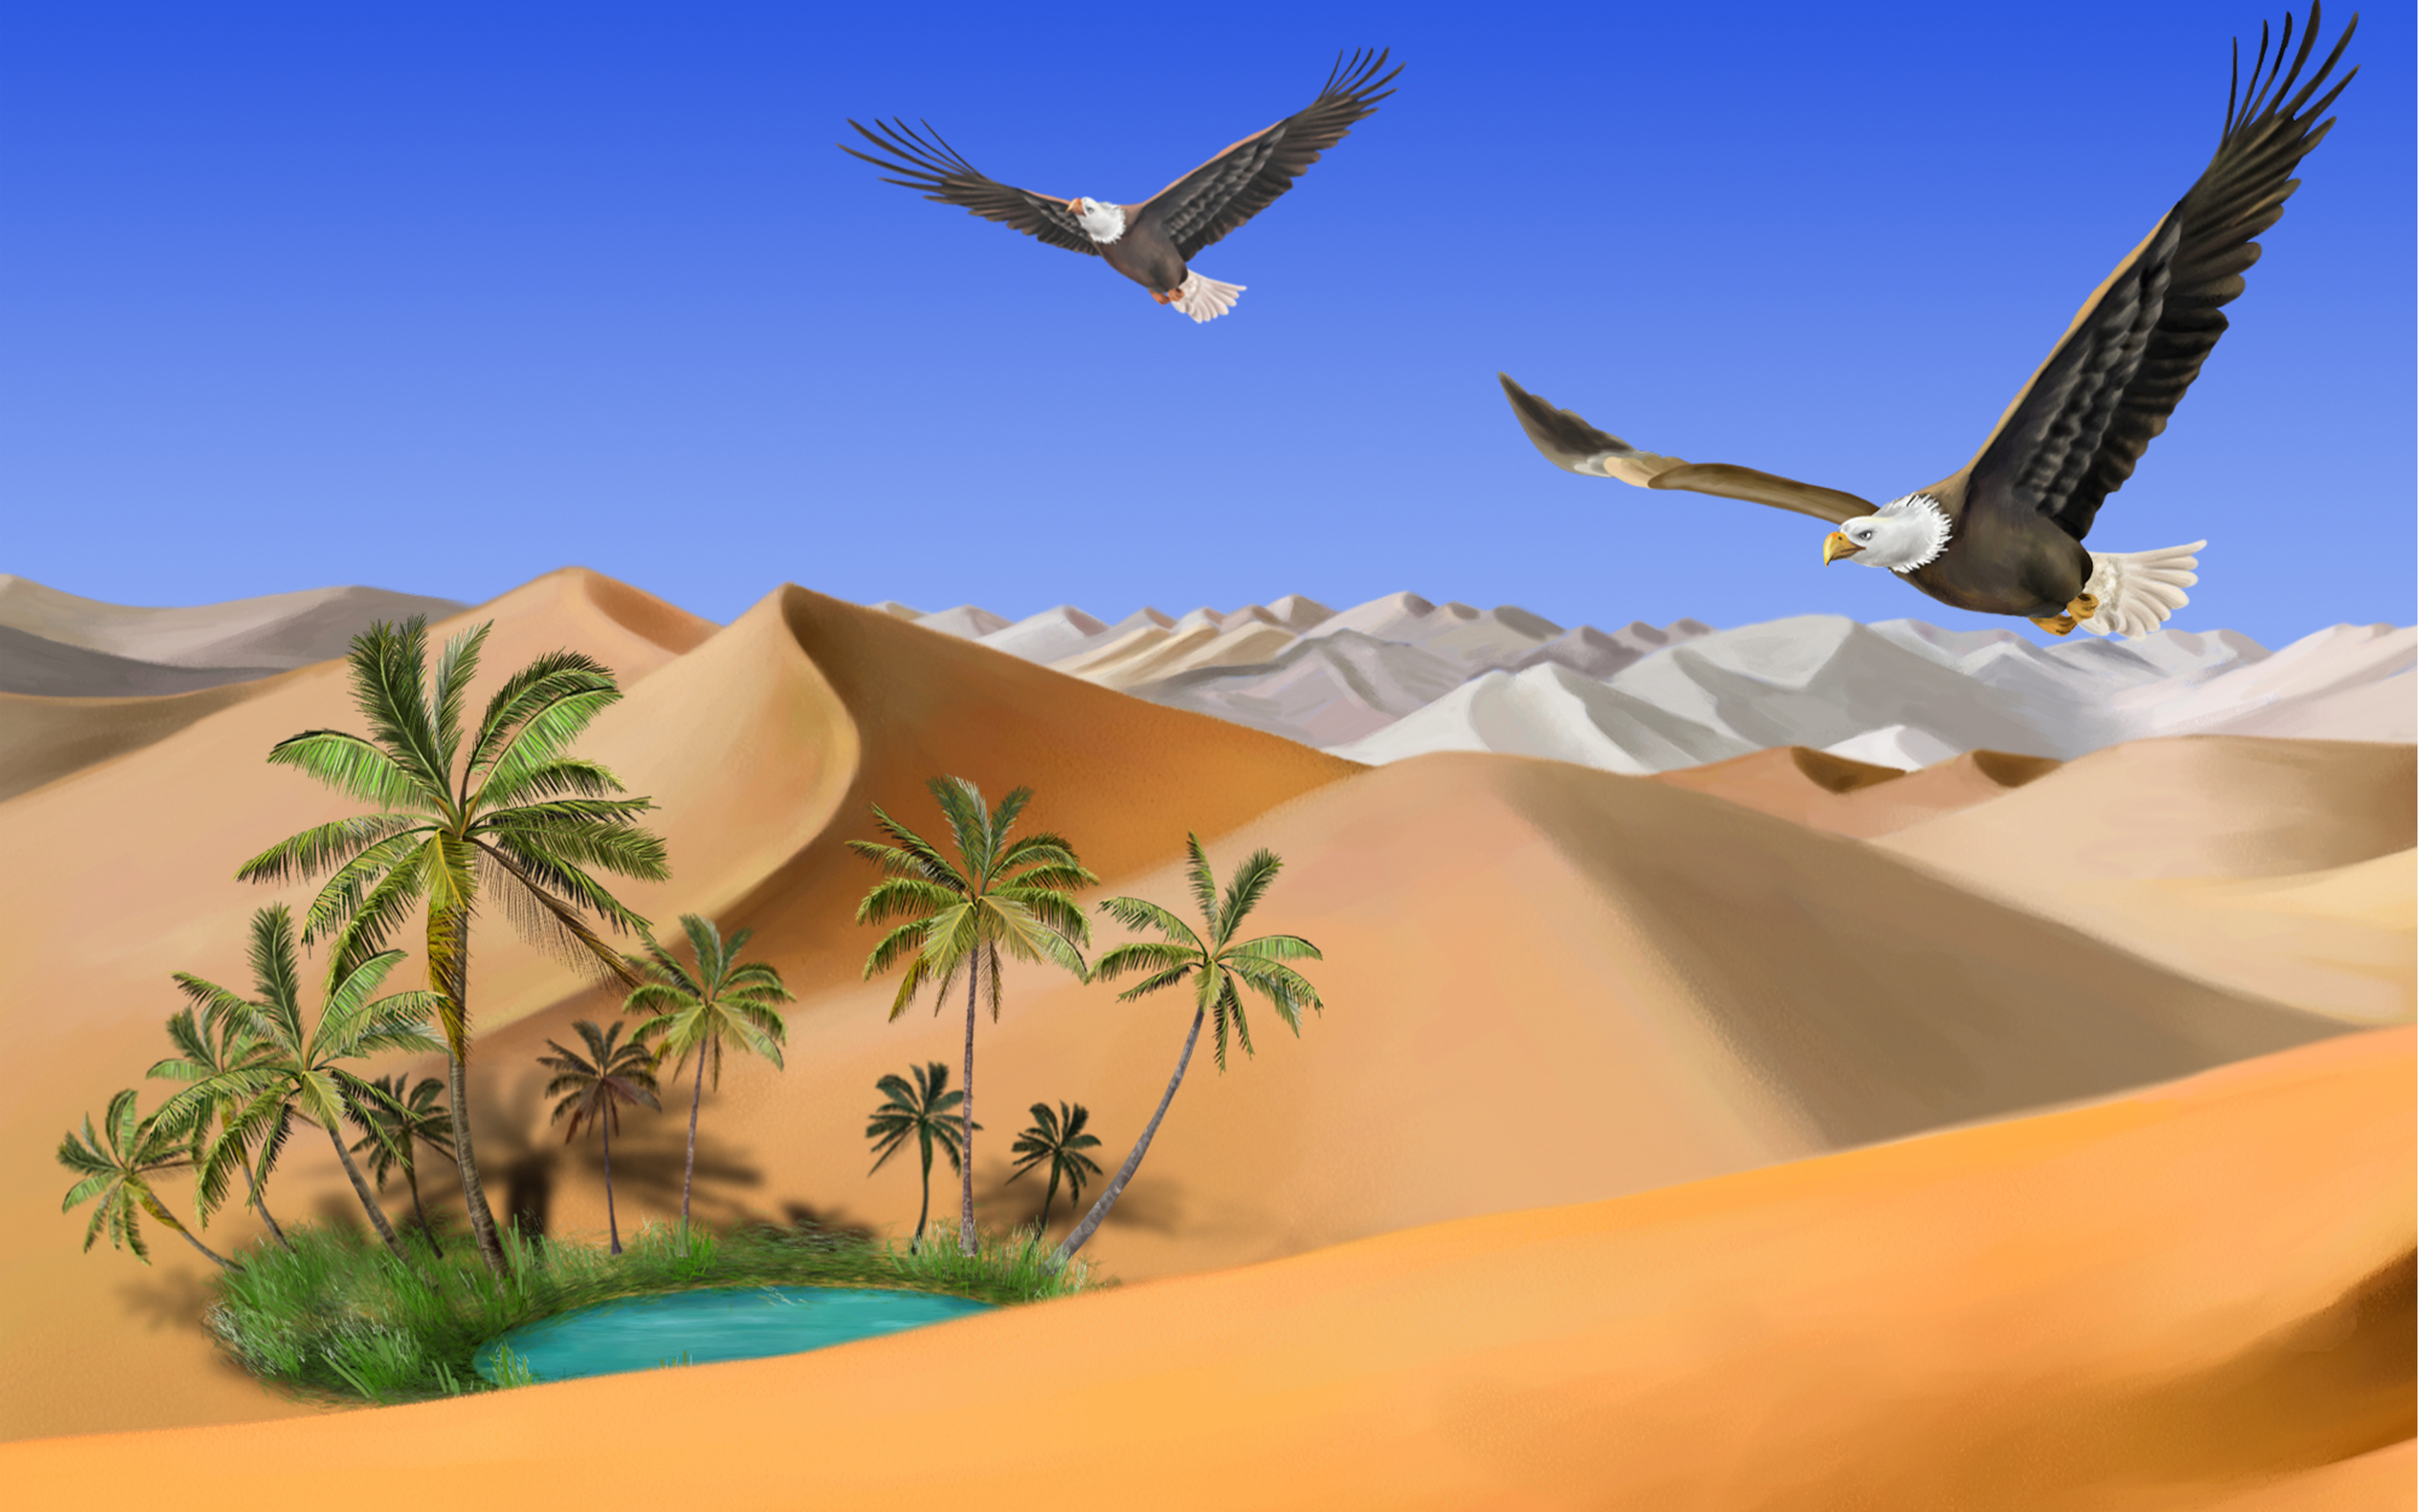 oasis landscape wallpapers archives - photo #11